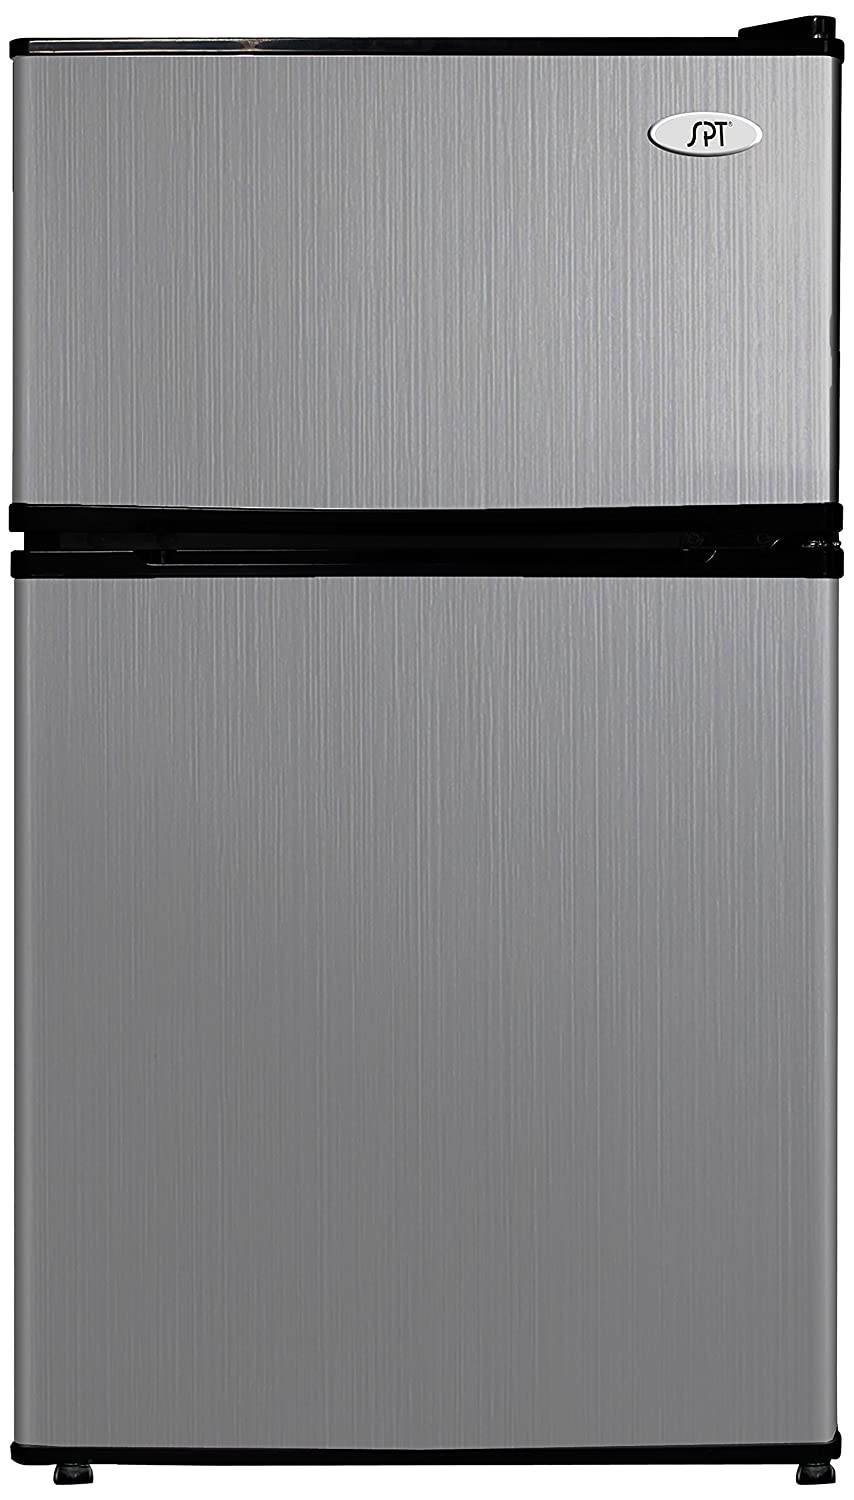 Amazon.com: SPT RF 314SS Double Door Refrigerator, Stainless Steel, 3.1  Cubic Feet: Appliances